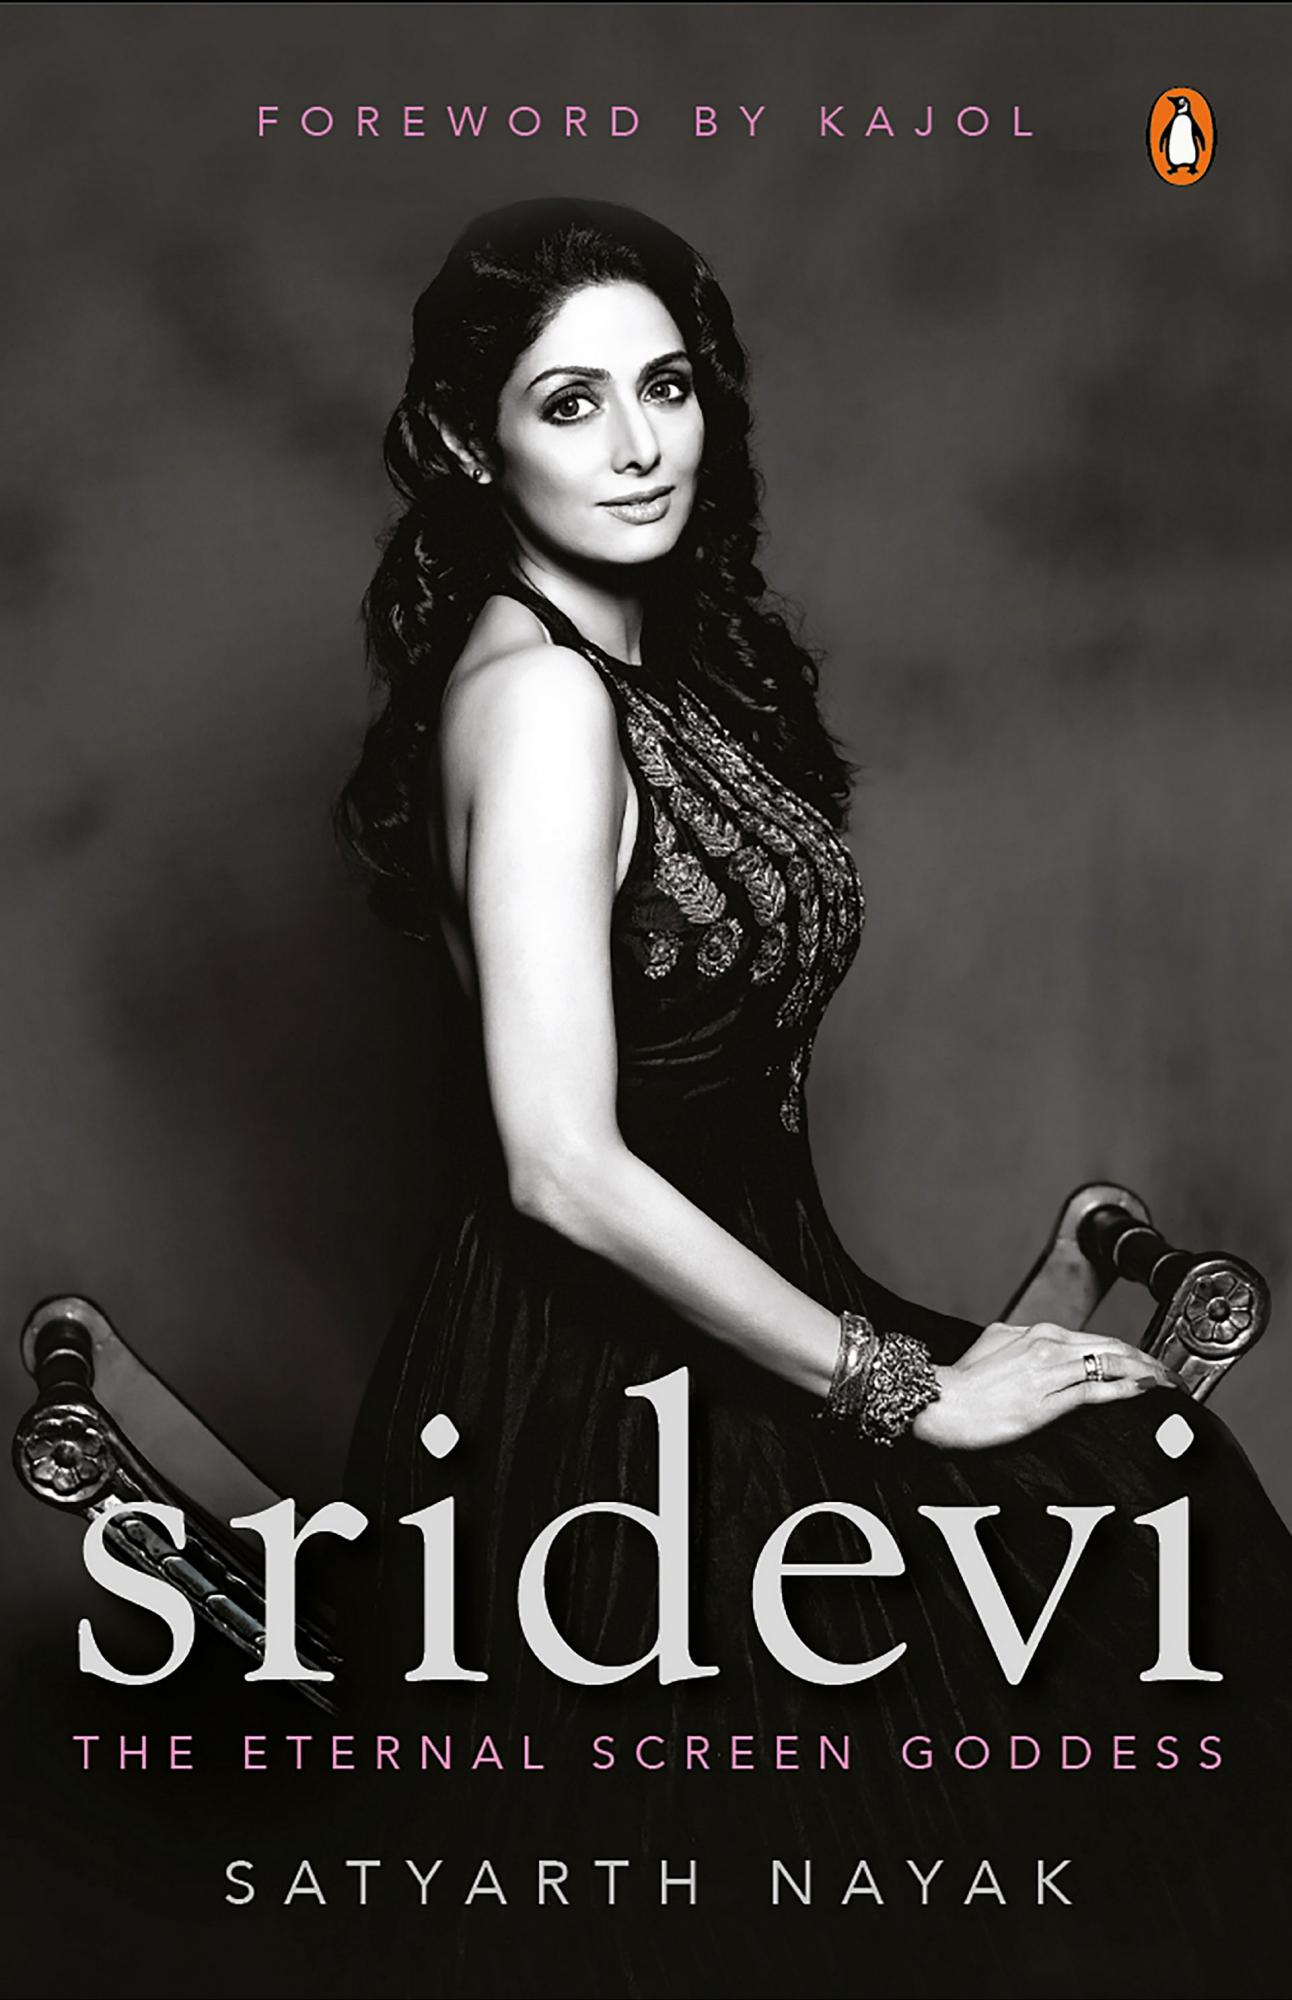 Sridevi: The Eternal Screen Goddess: Why This Biography of the Late Screen Goddess is a Must-Read